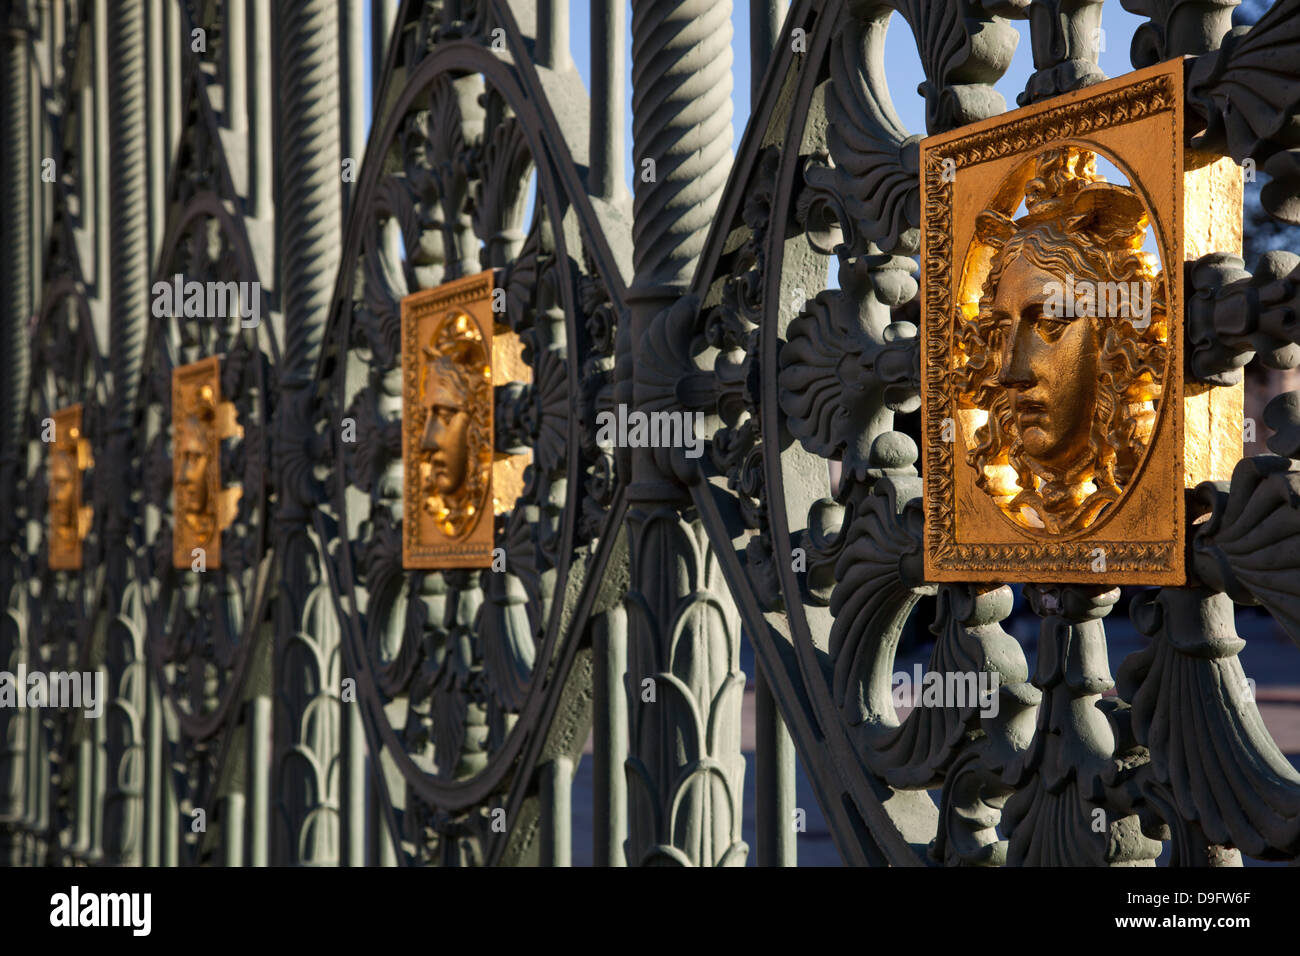 Gates of the Royal Palace of Turin (Palazzo Reale) embossed with a Medusa symbol to fend off intruders, Turin, Piedmont, - Stock Image